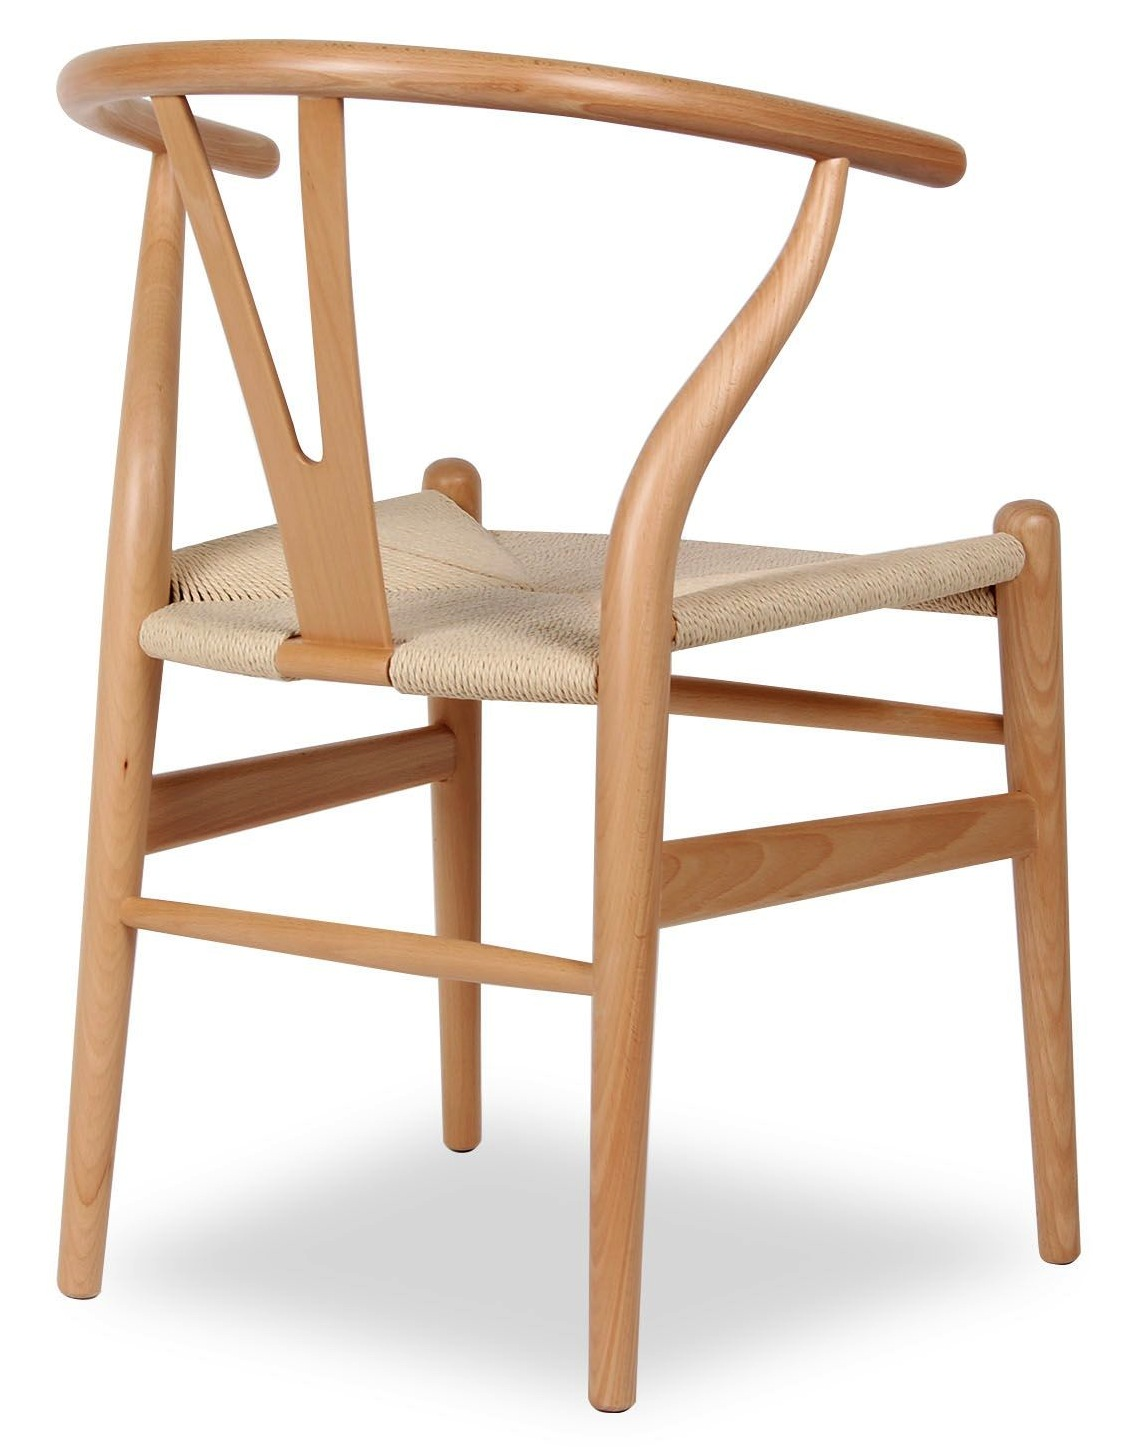 natural-wishbone-chair.jpg